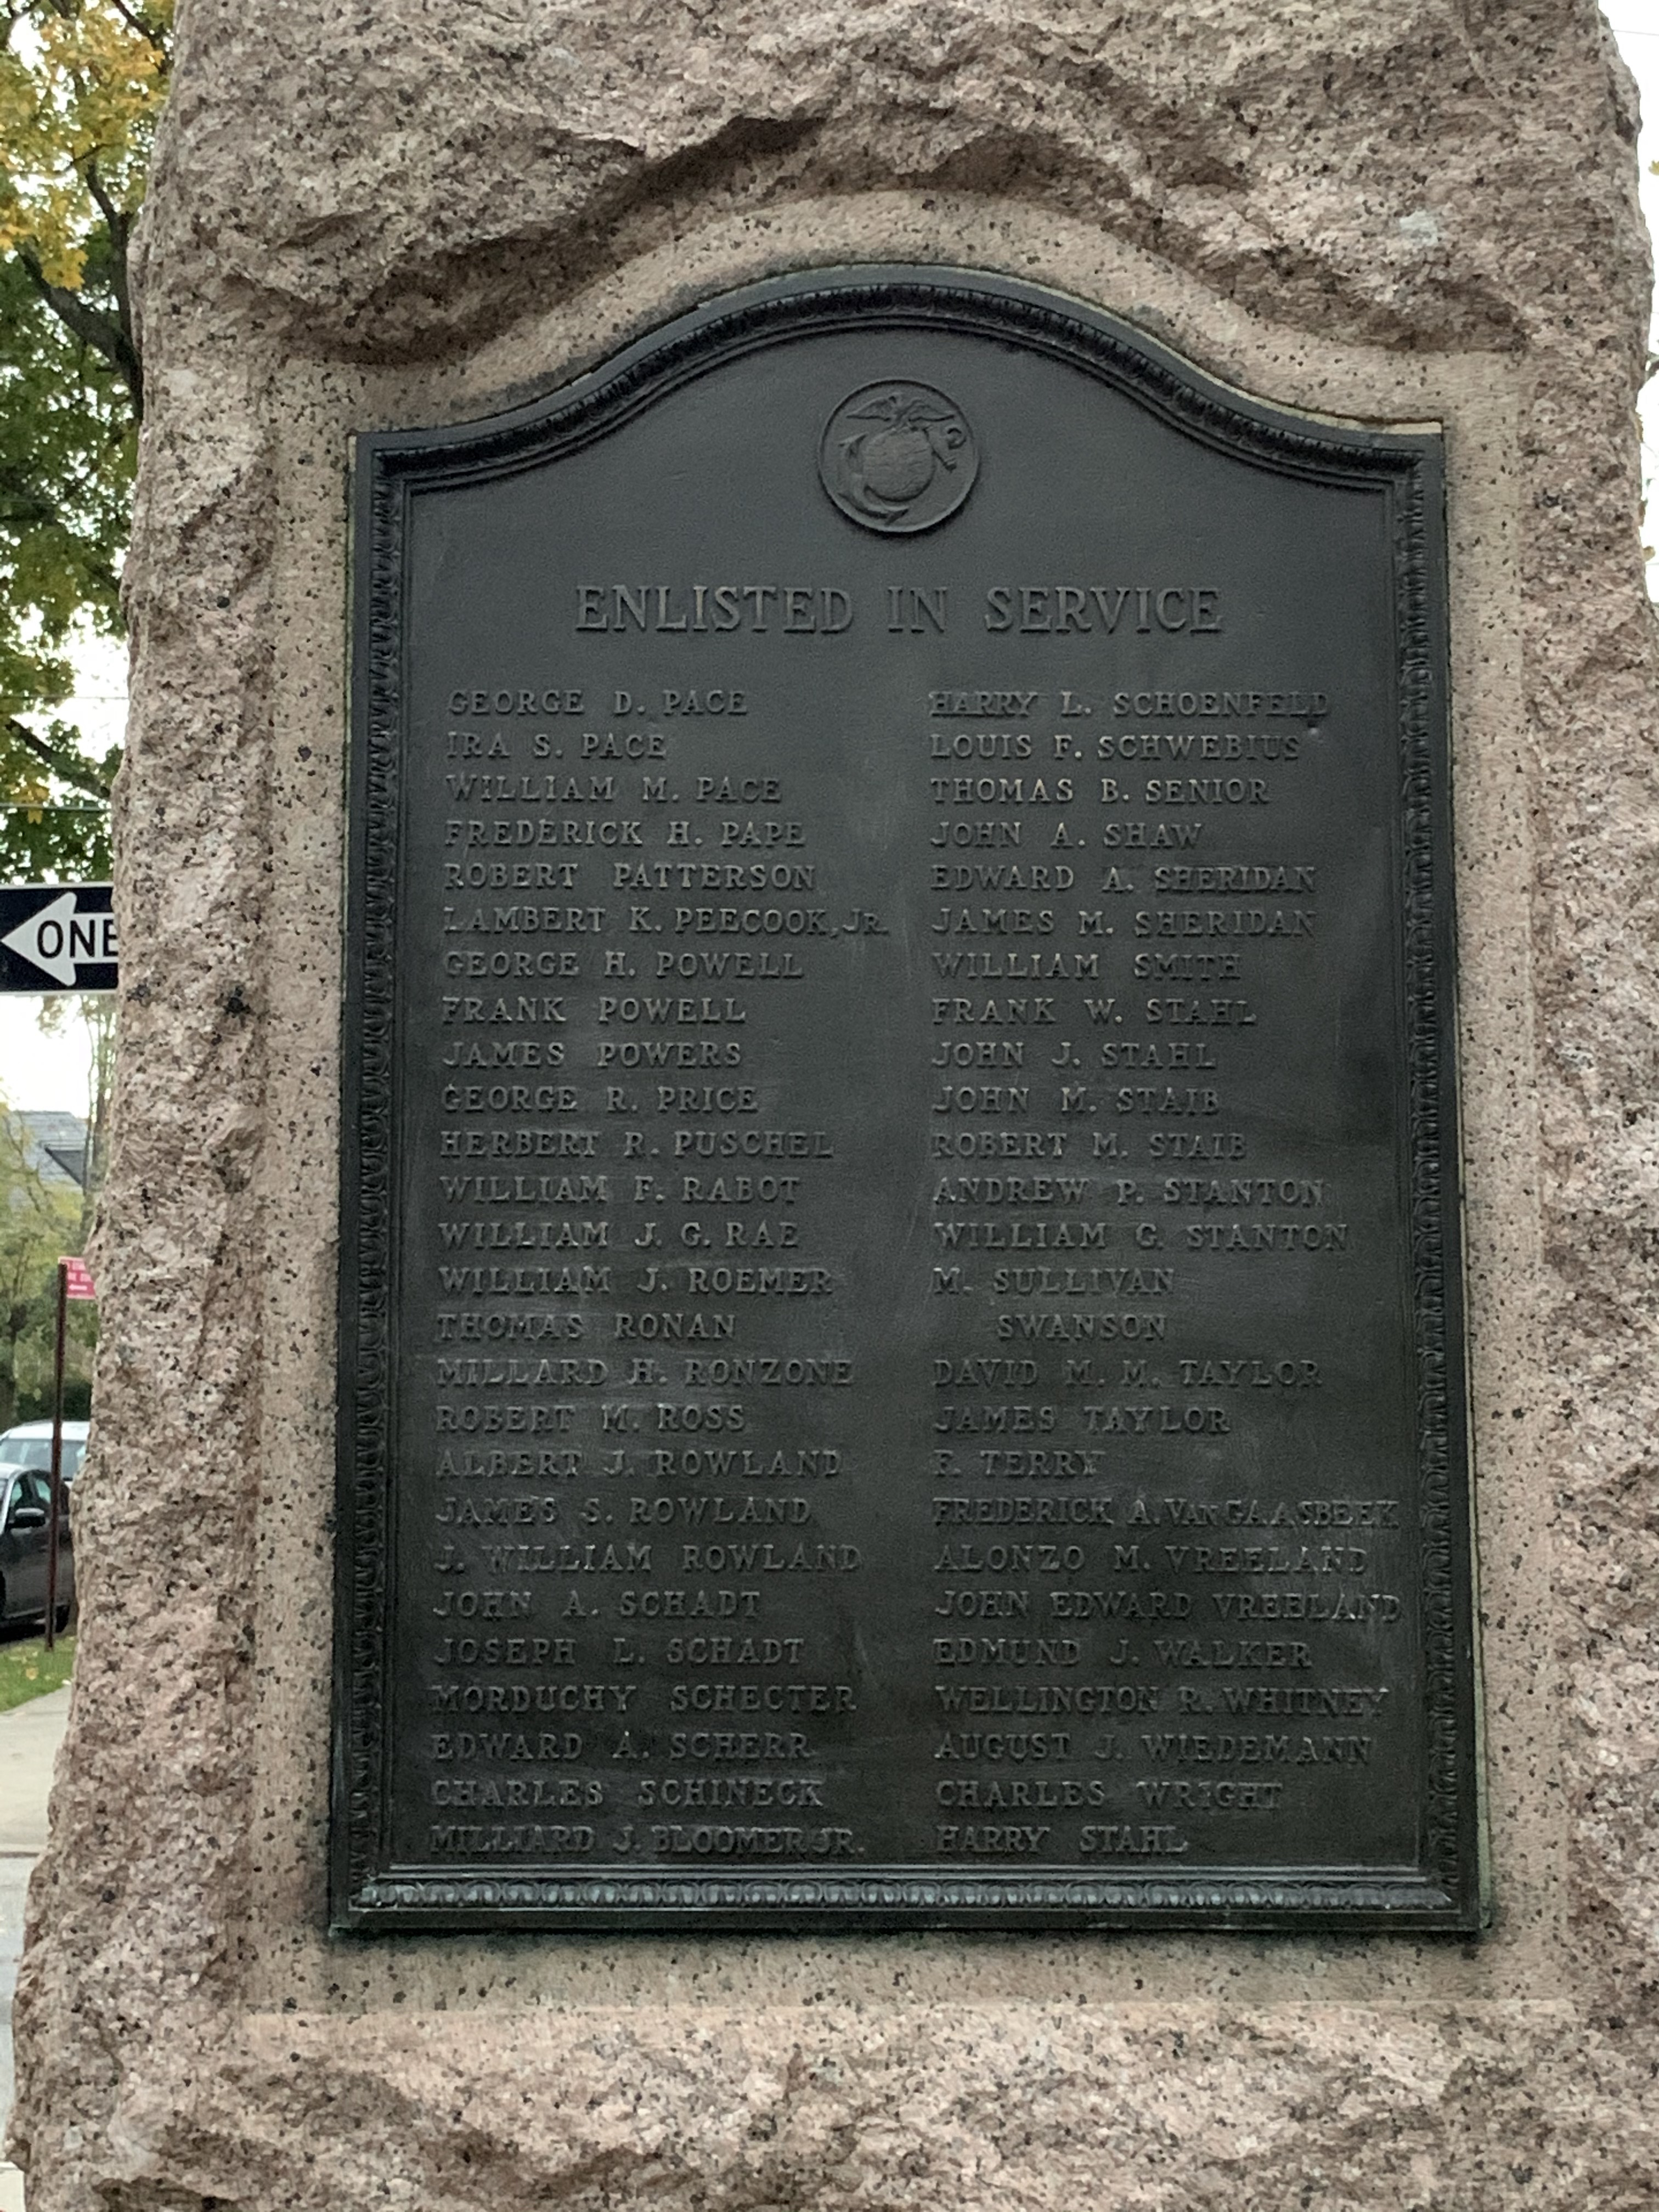 Plaque on right side